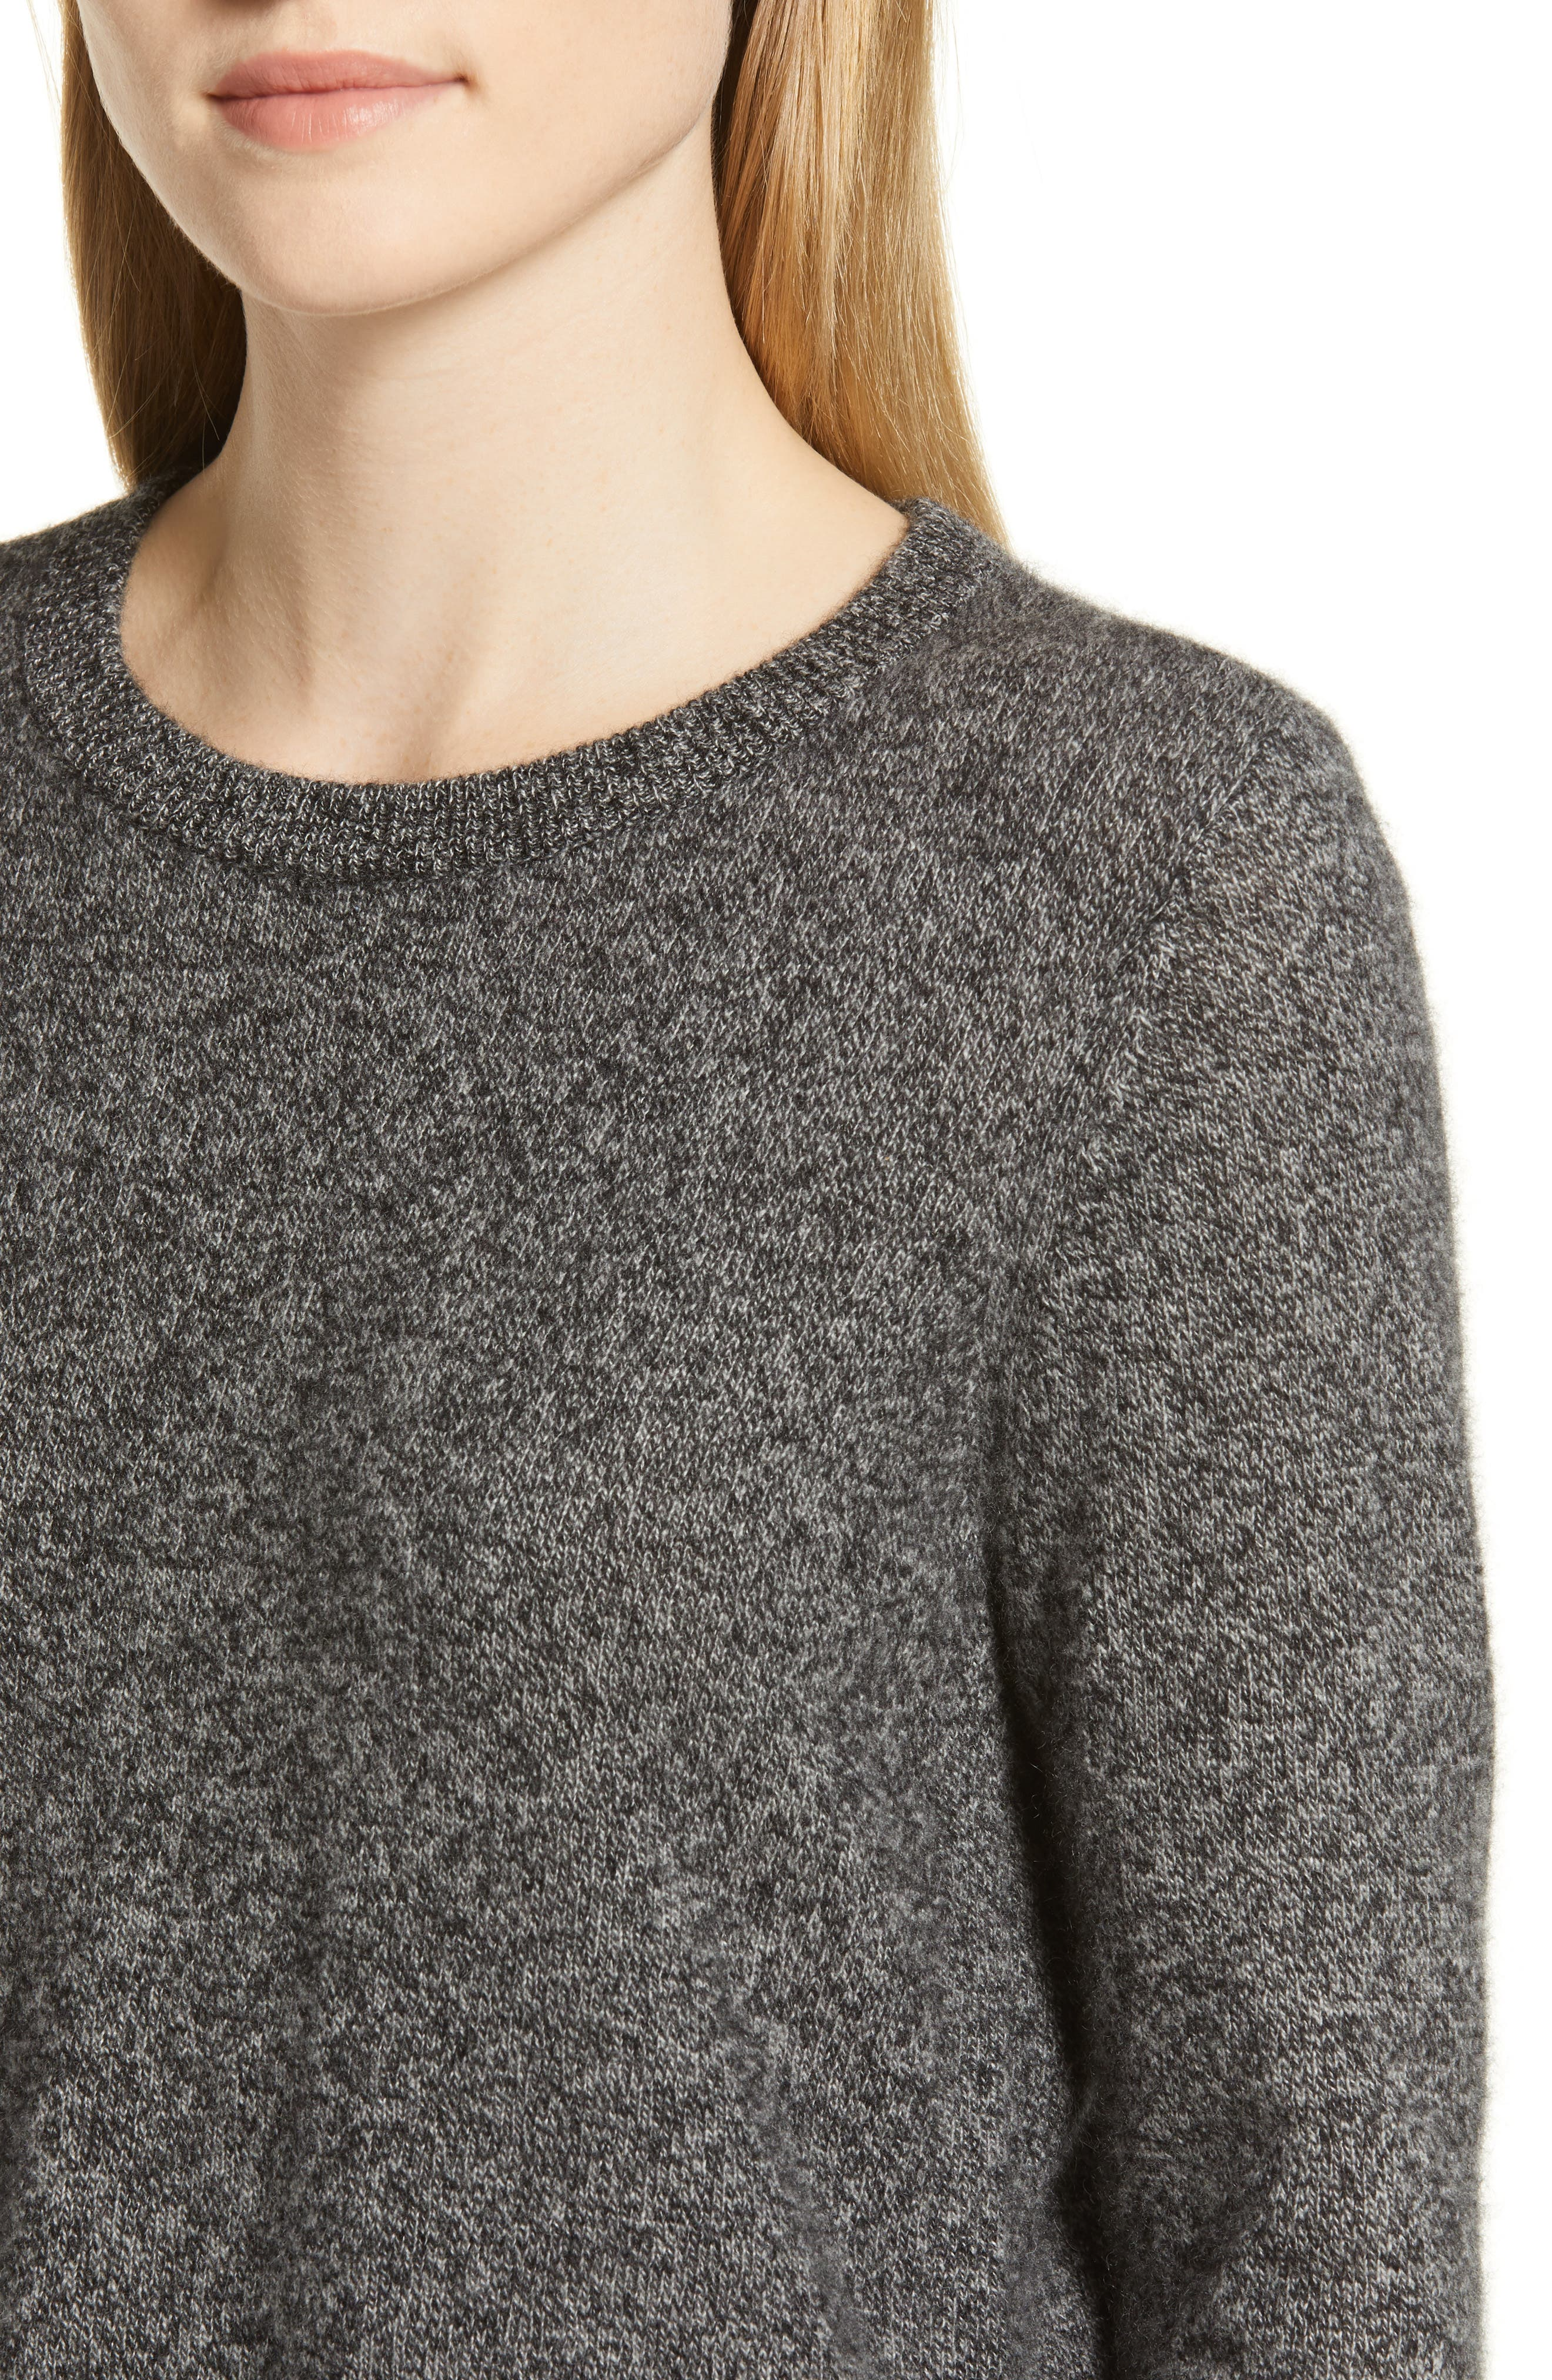 Crewneck Cashmere Sweater,                             Alternate thumbnail 4, color,                             BLACK- GREY MARL